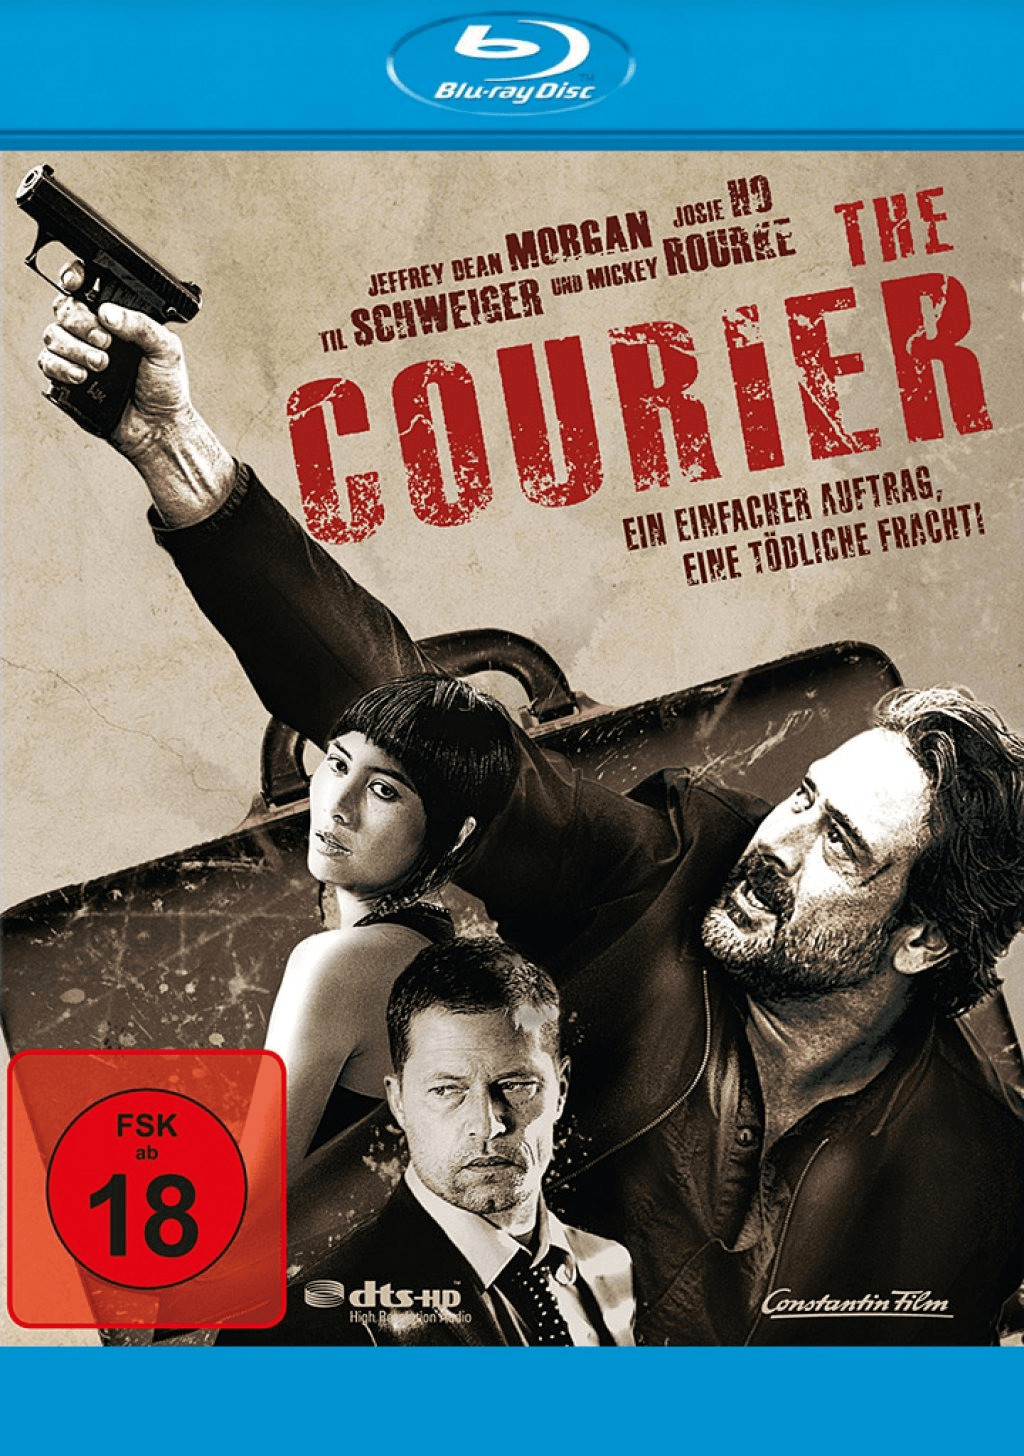 Image of The Courier